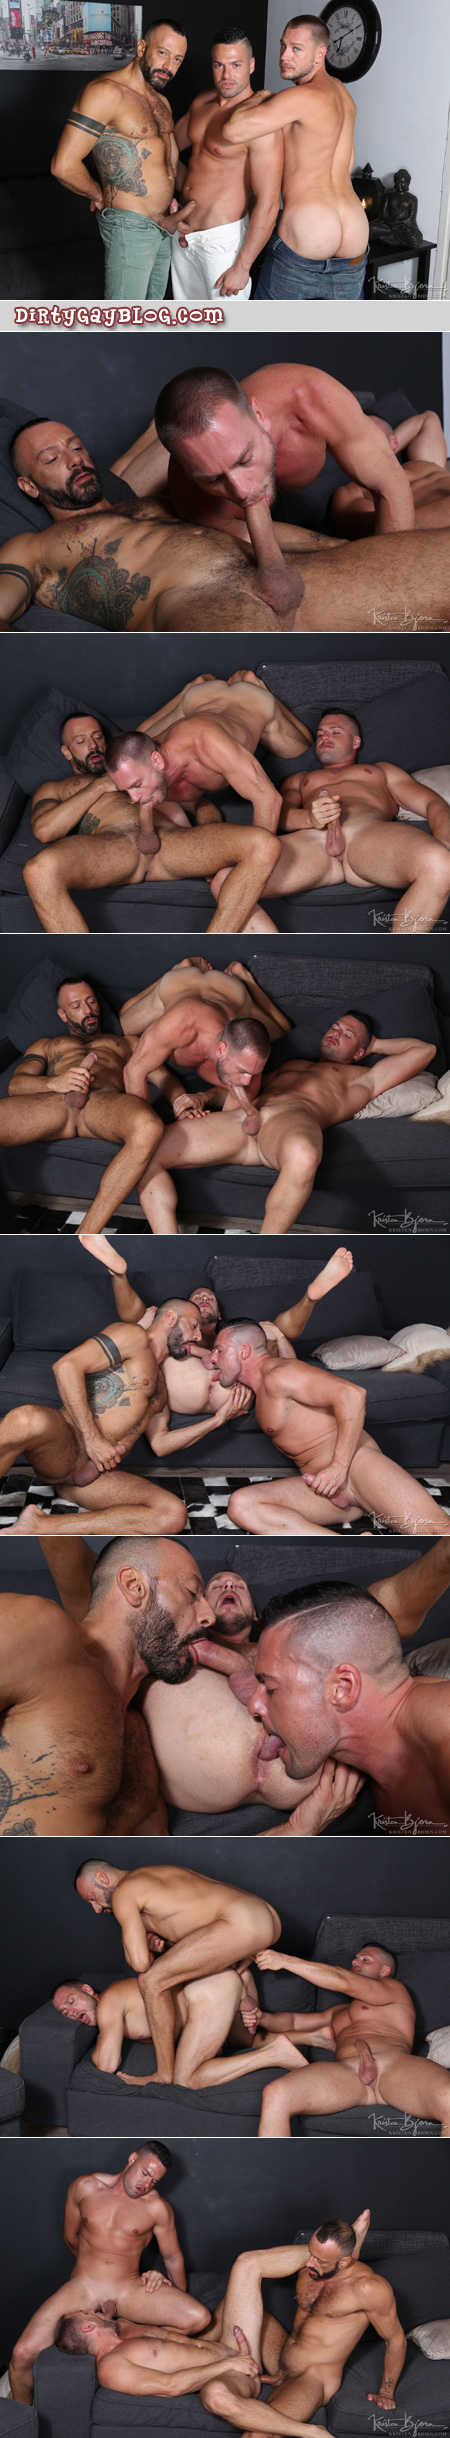 European muscle Daddies having casual gay group sex with one bottom.